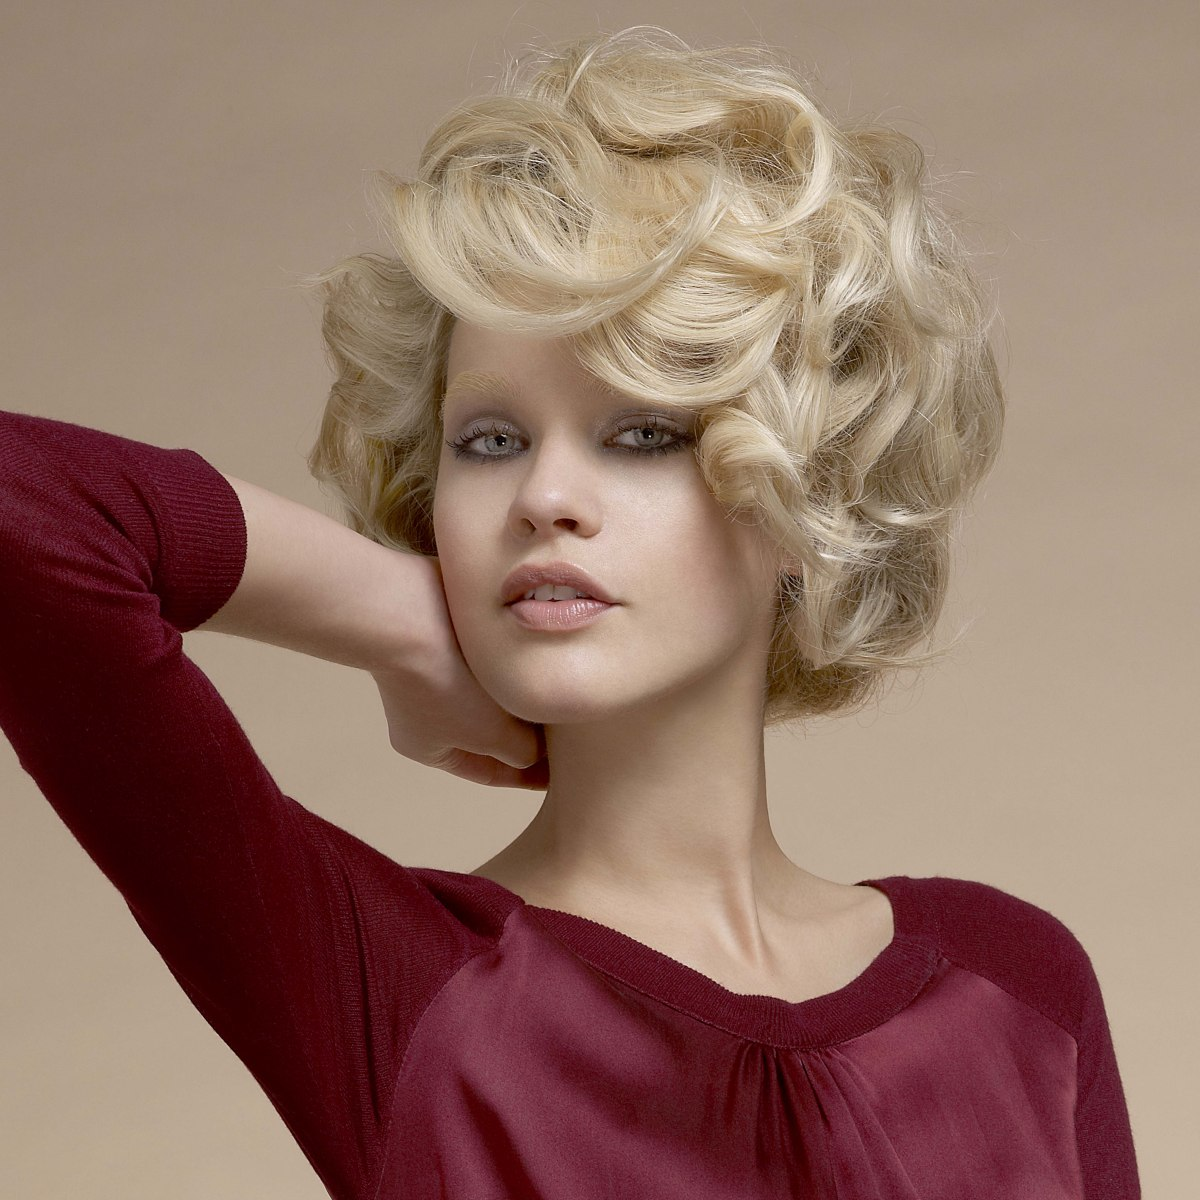 Phenomenal Mid Neck Length 60S Hairstyle With Large Curls Short Hairstyles Gunalazisus